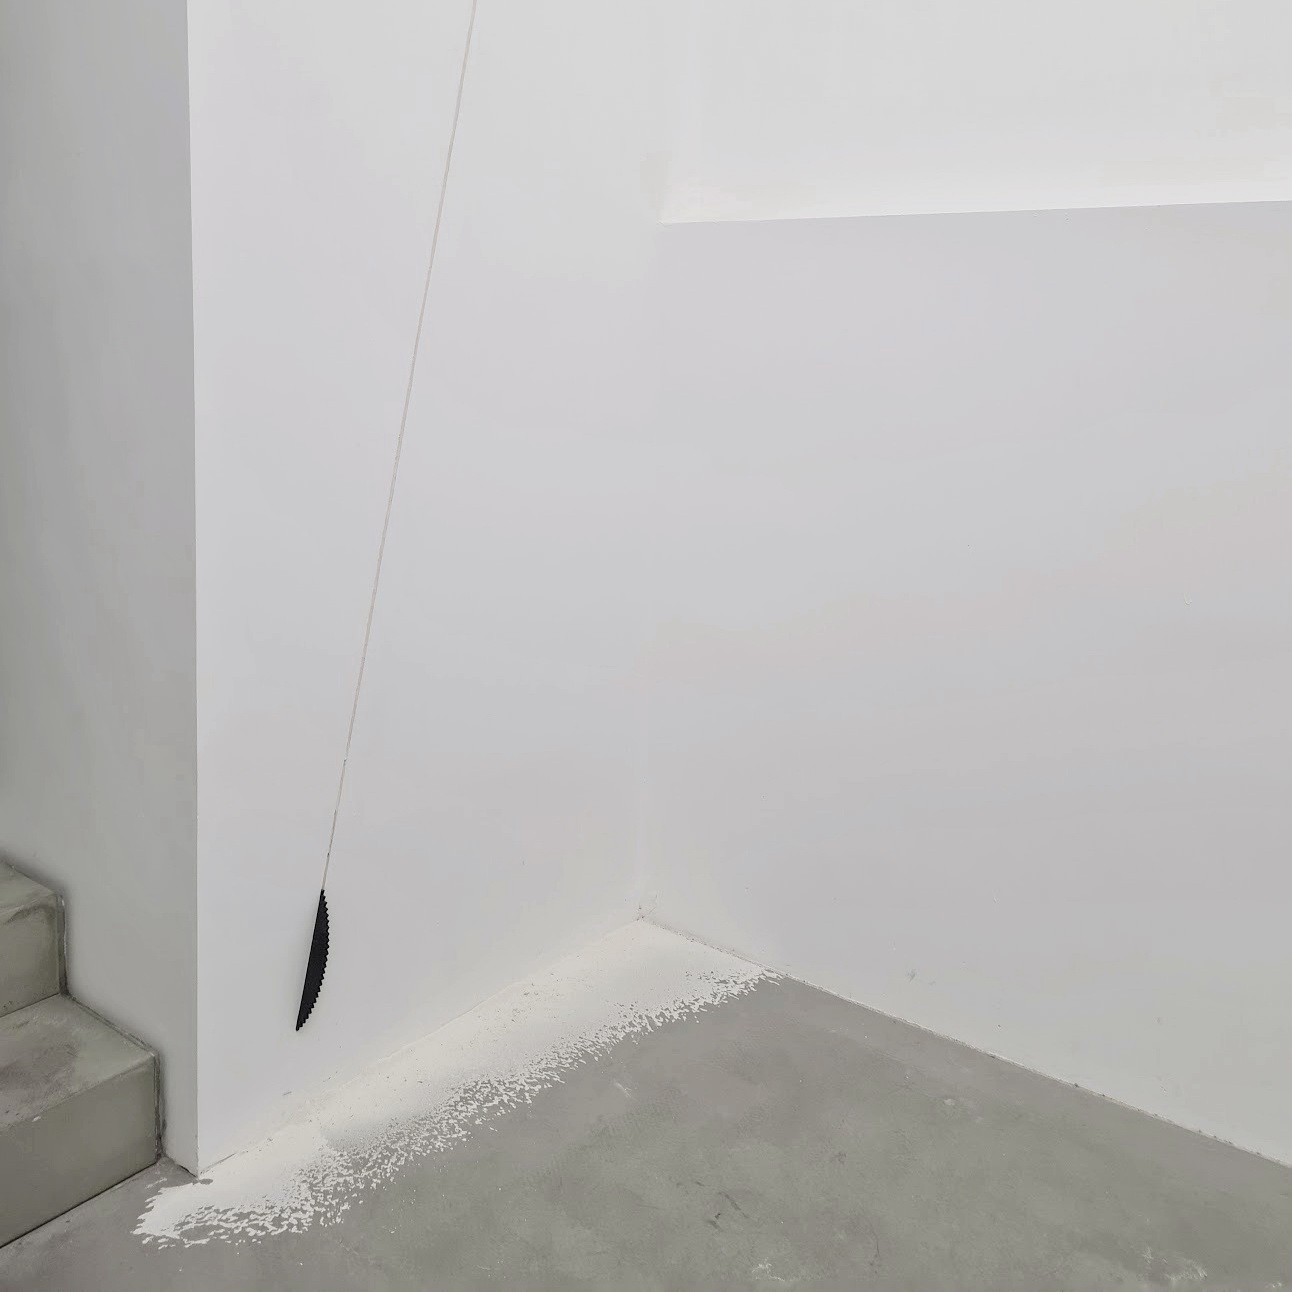 "A sawblade made of black epoxy resin is cutting the wall from behind. The dust from cutting the wall is still on the floor. ""Cut"" is an artwork by Erik Andersen."